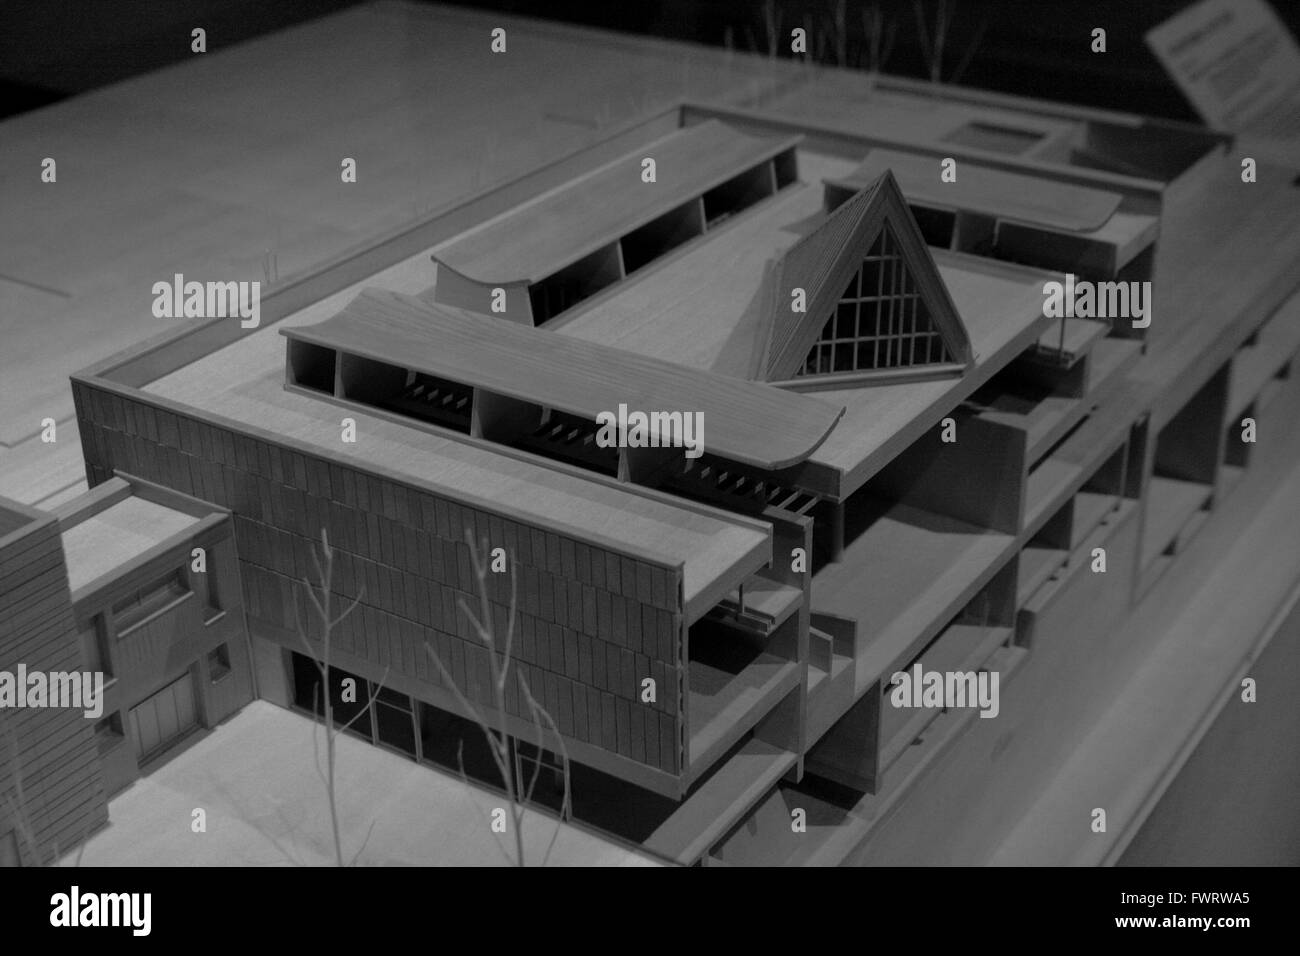 Model of the Le Corbusier-designed National Museum of ...